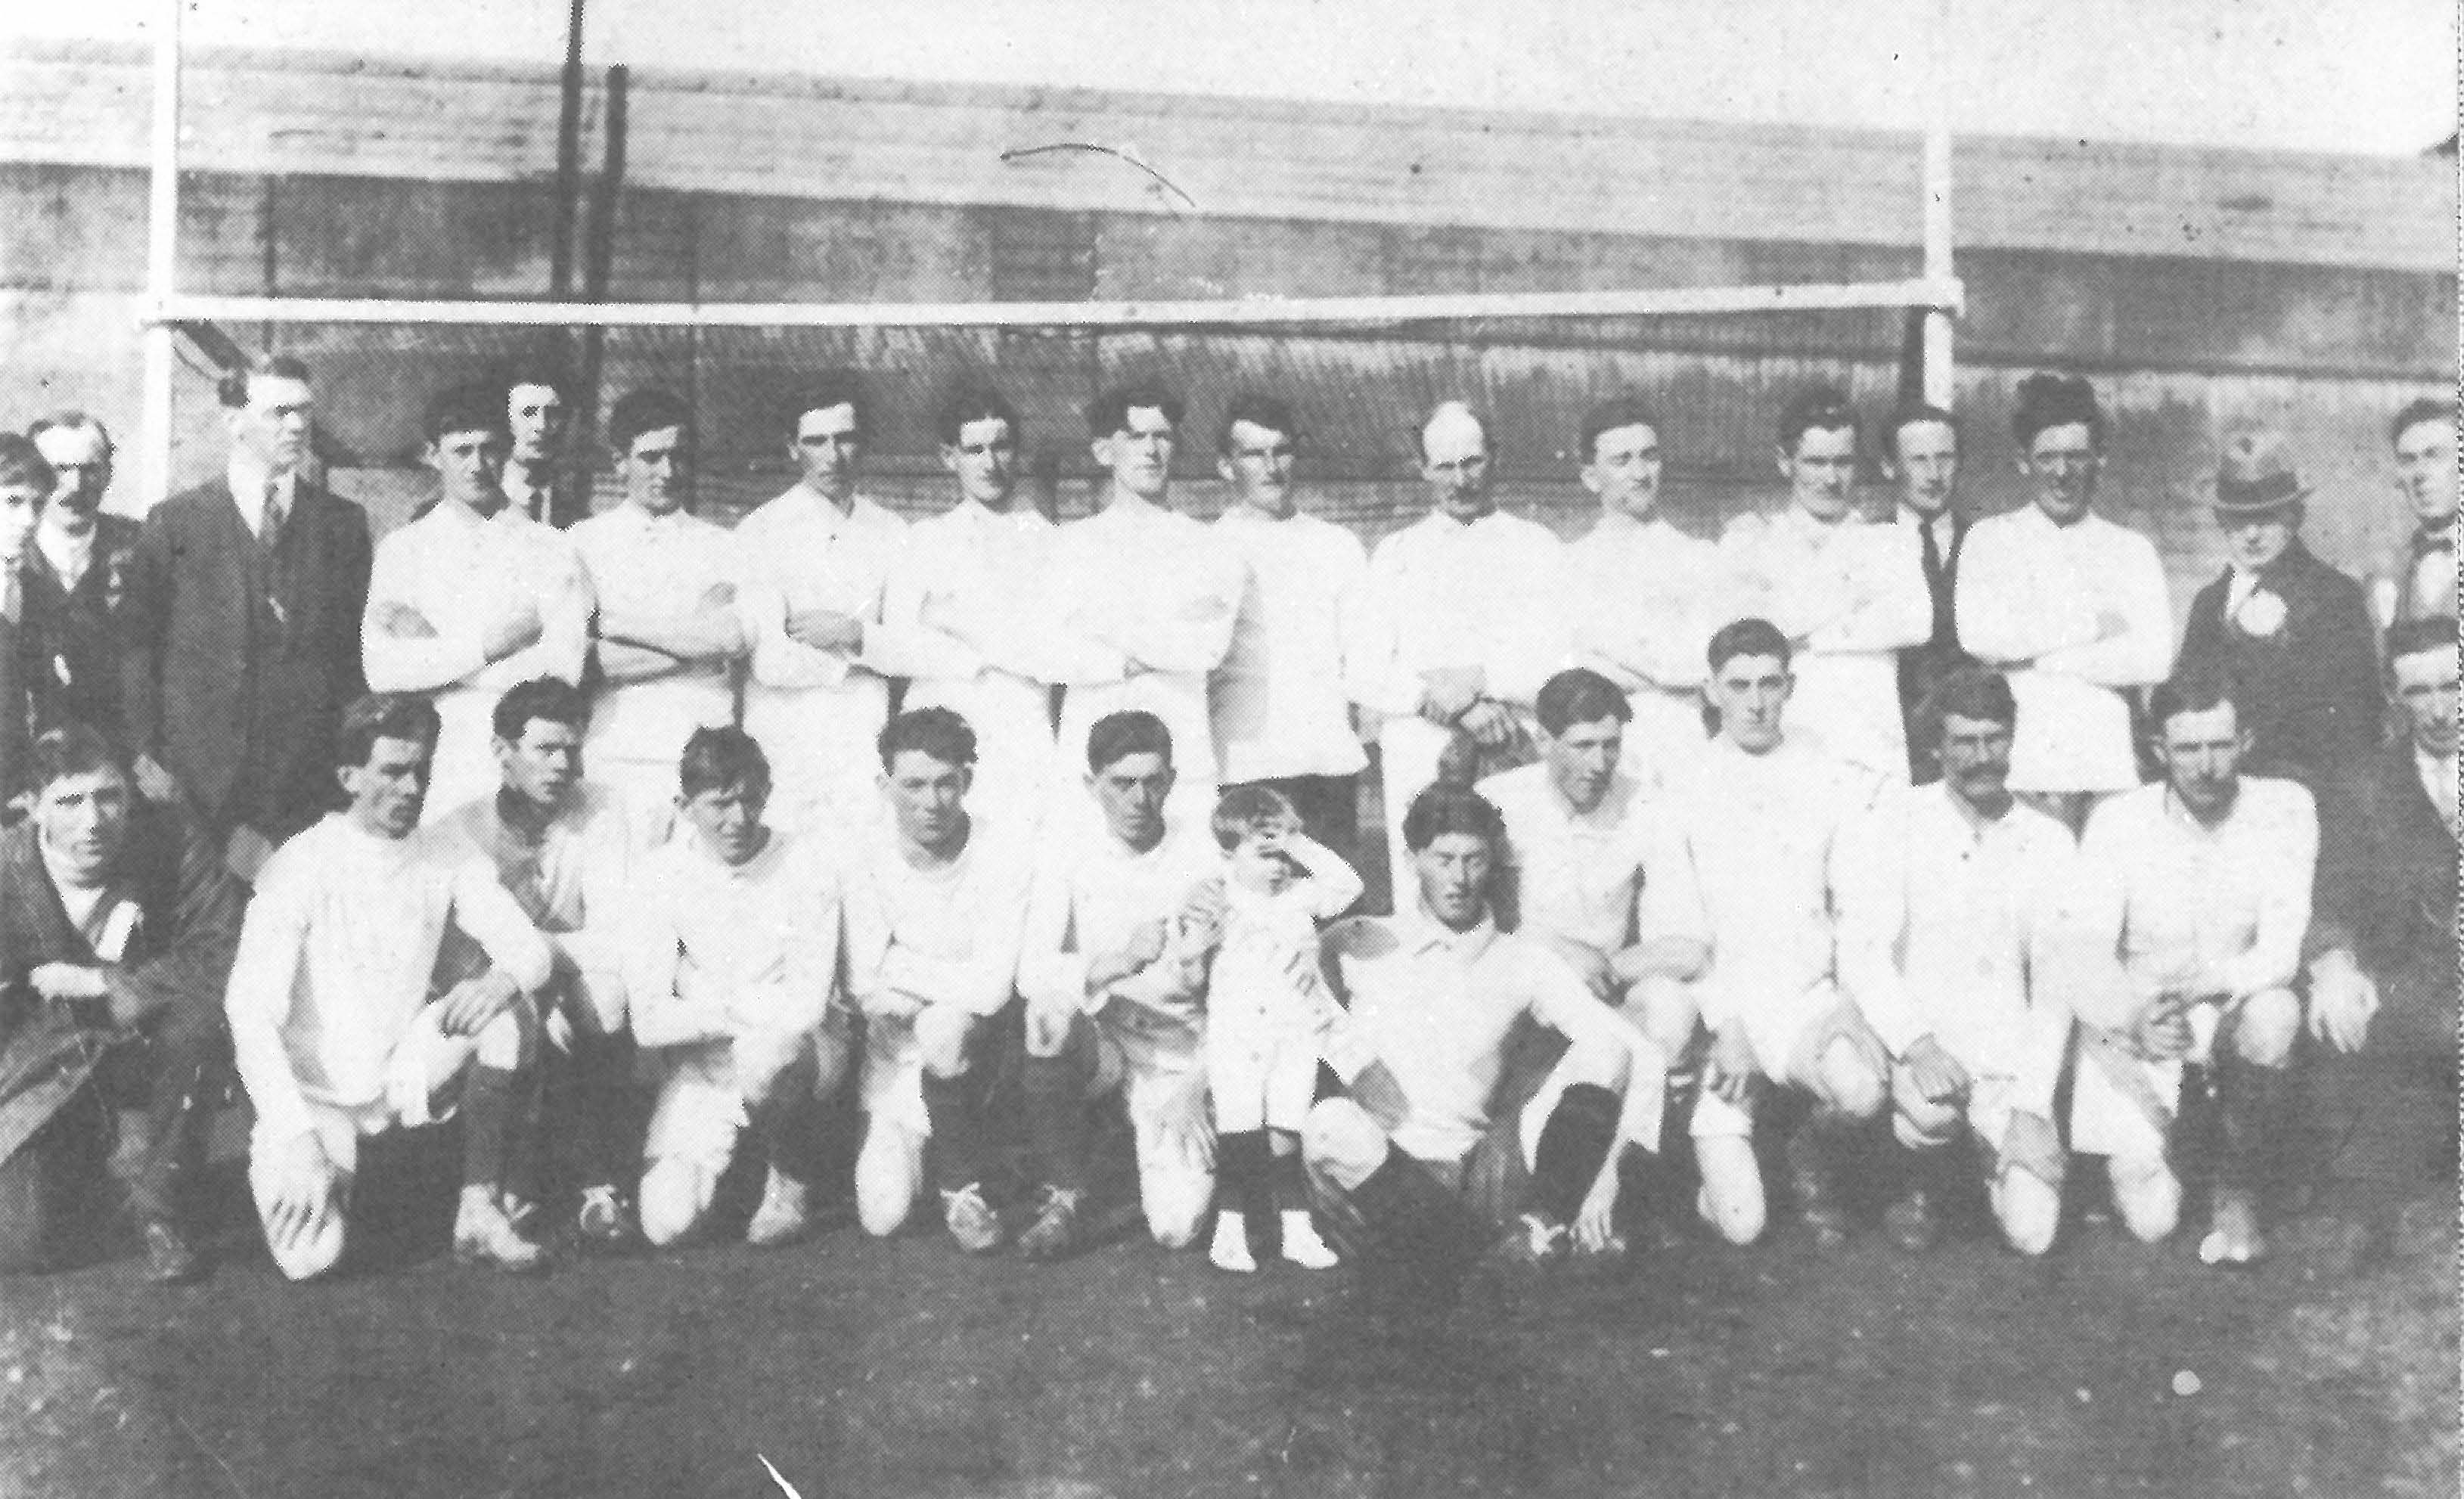 Kildare (Caragh) 1919 Football All-Ireland Champions